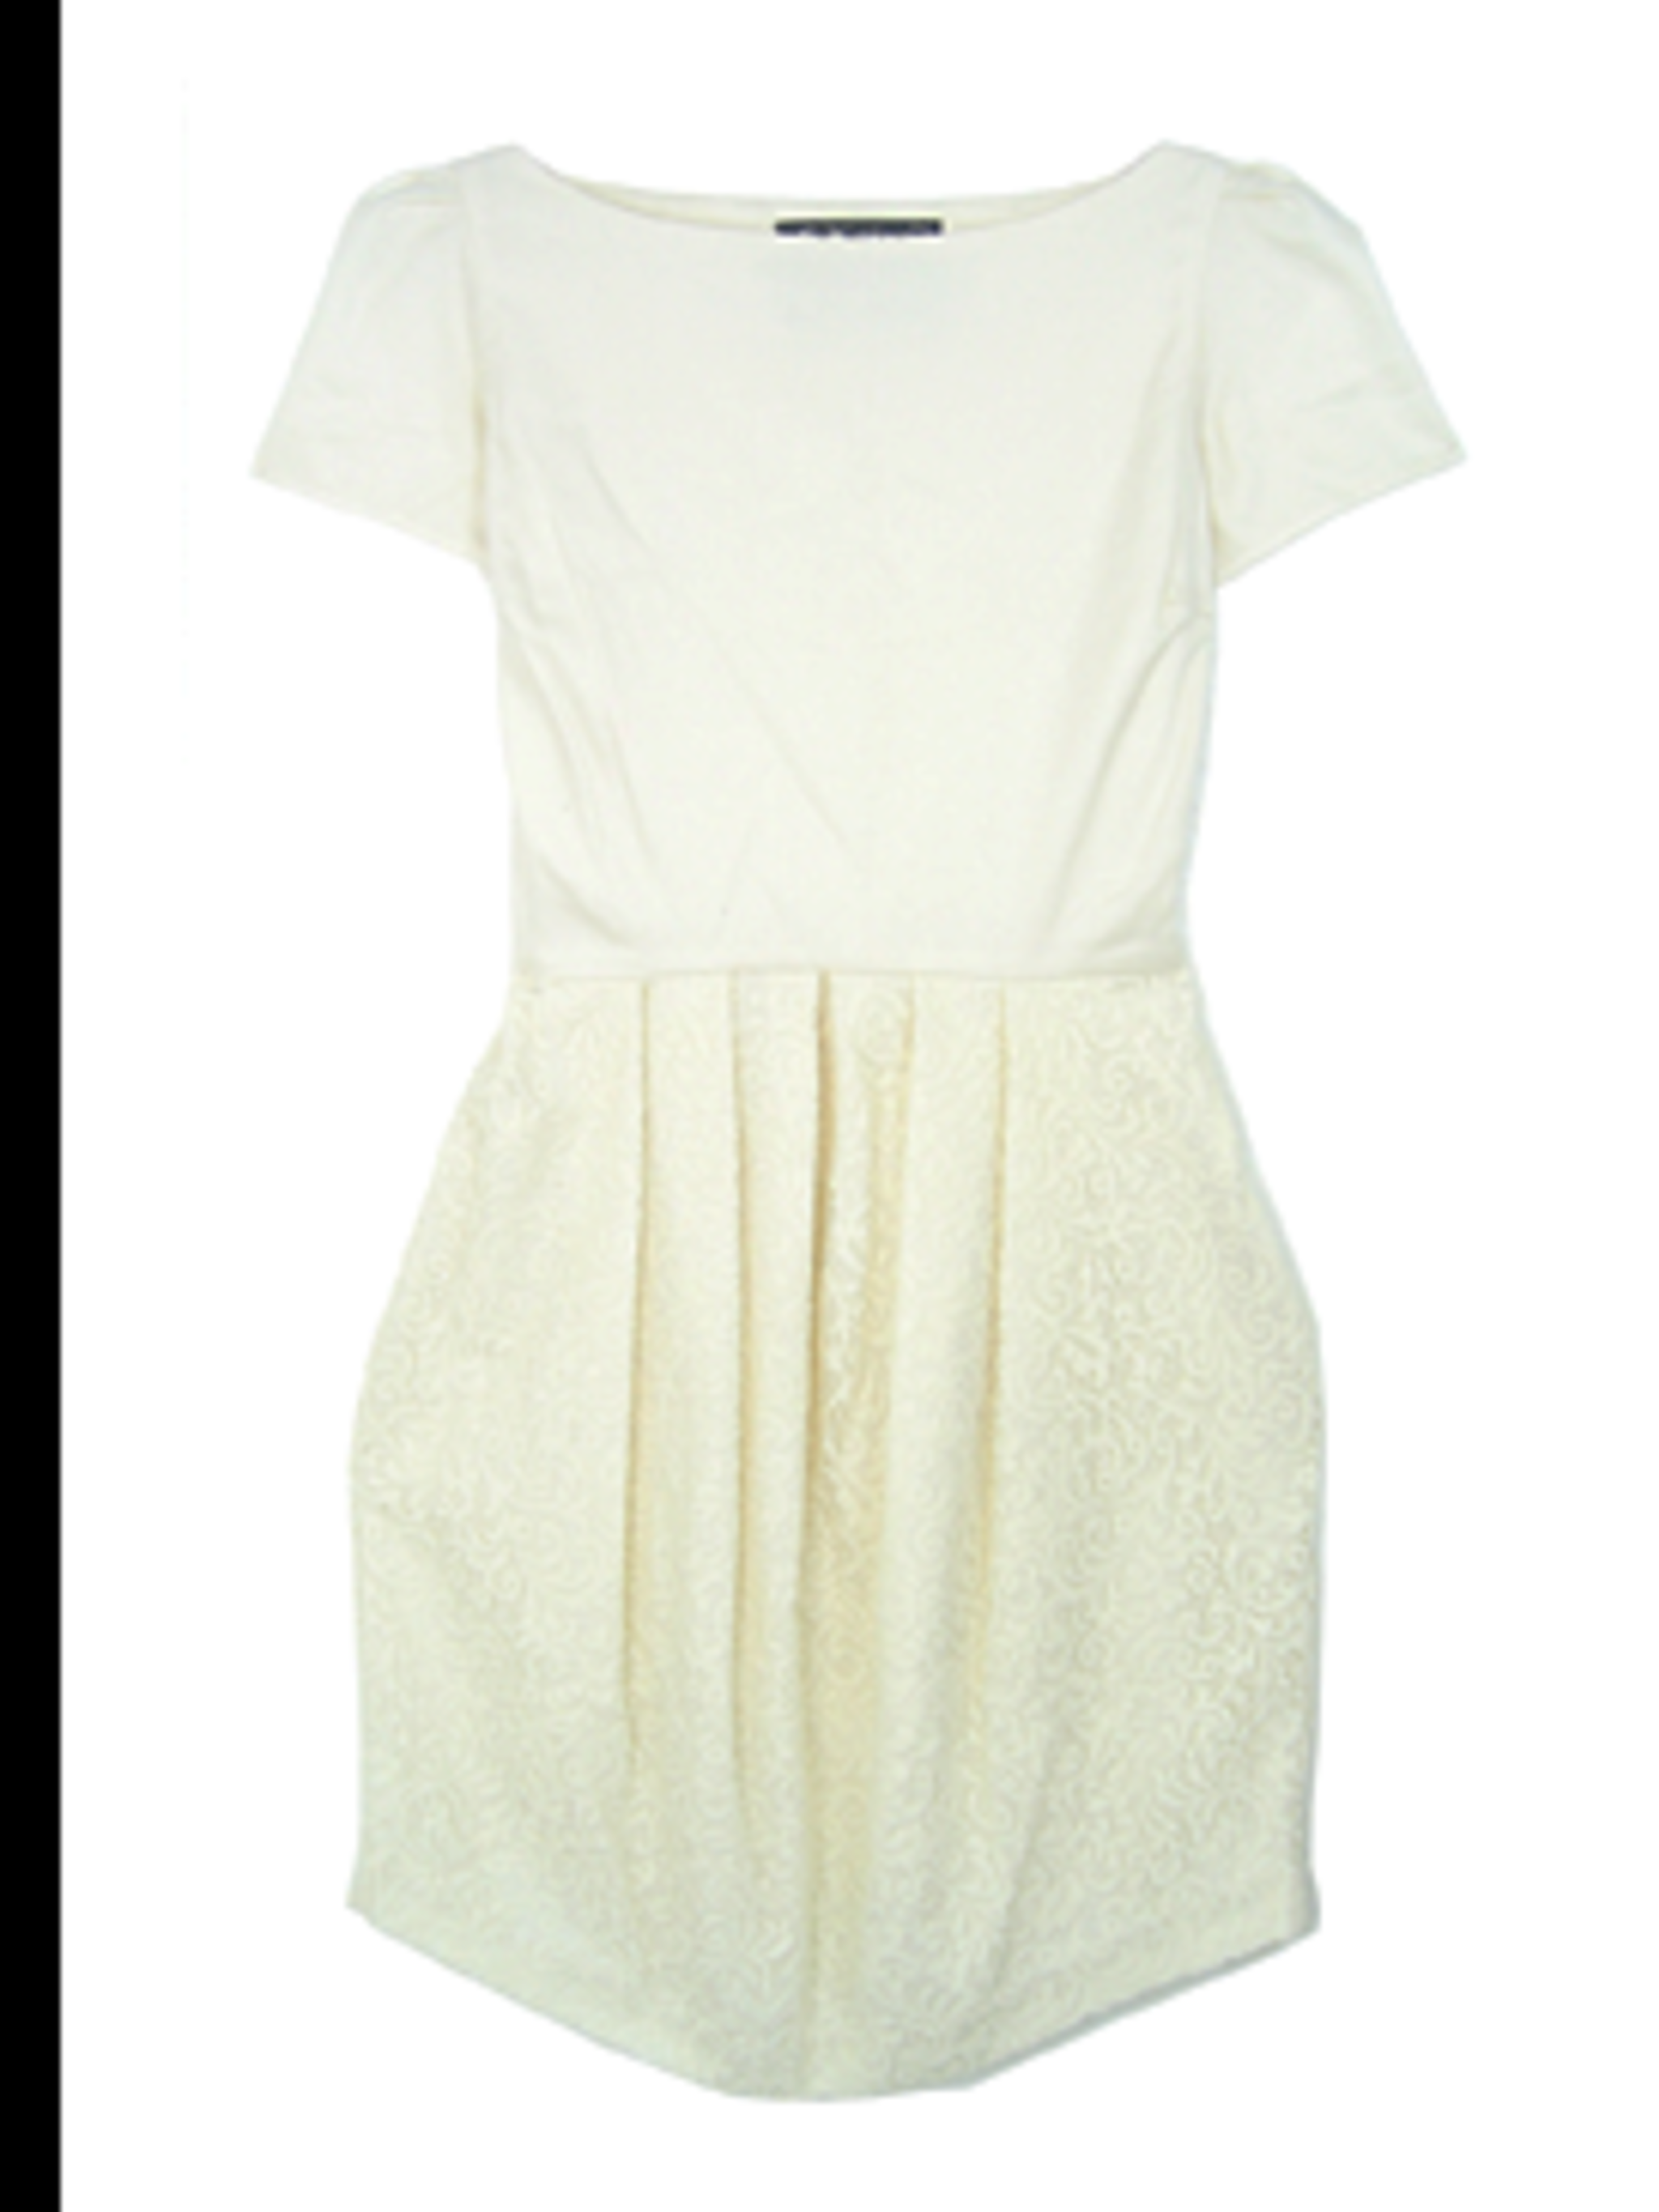 "<p>Lace dress, £250 by Minna at <a href=""http://www.fashion-conscience.com/"">eco-friendly clothes boutique Fashion Conscience</a></p>"